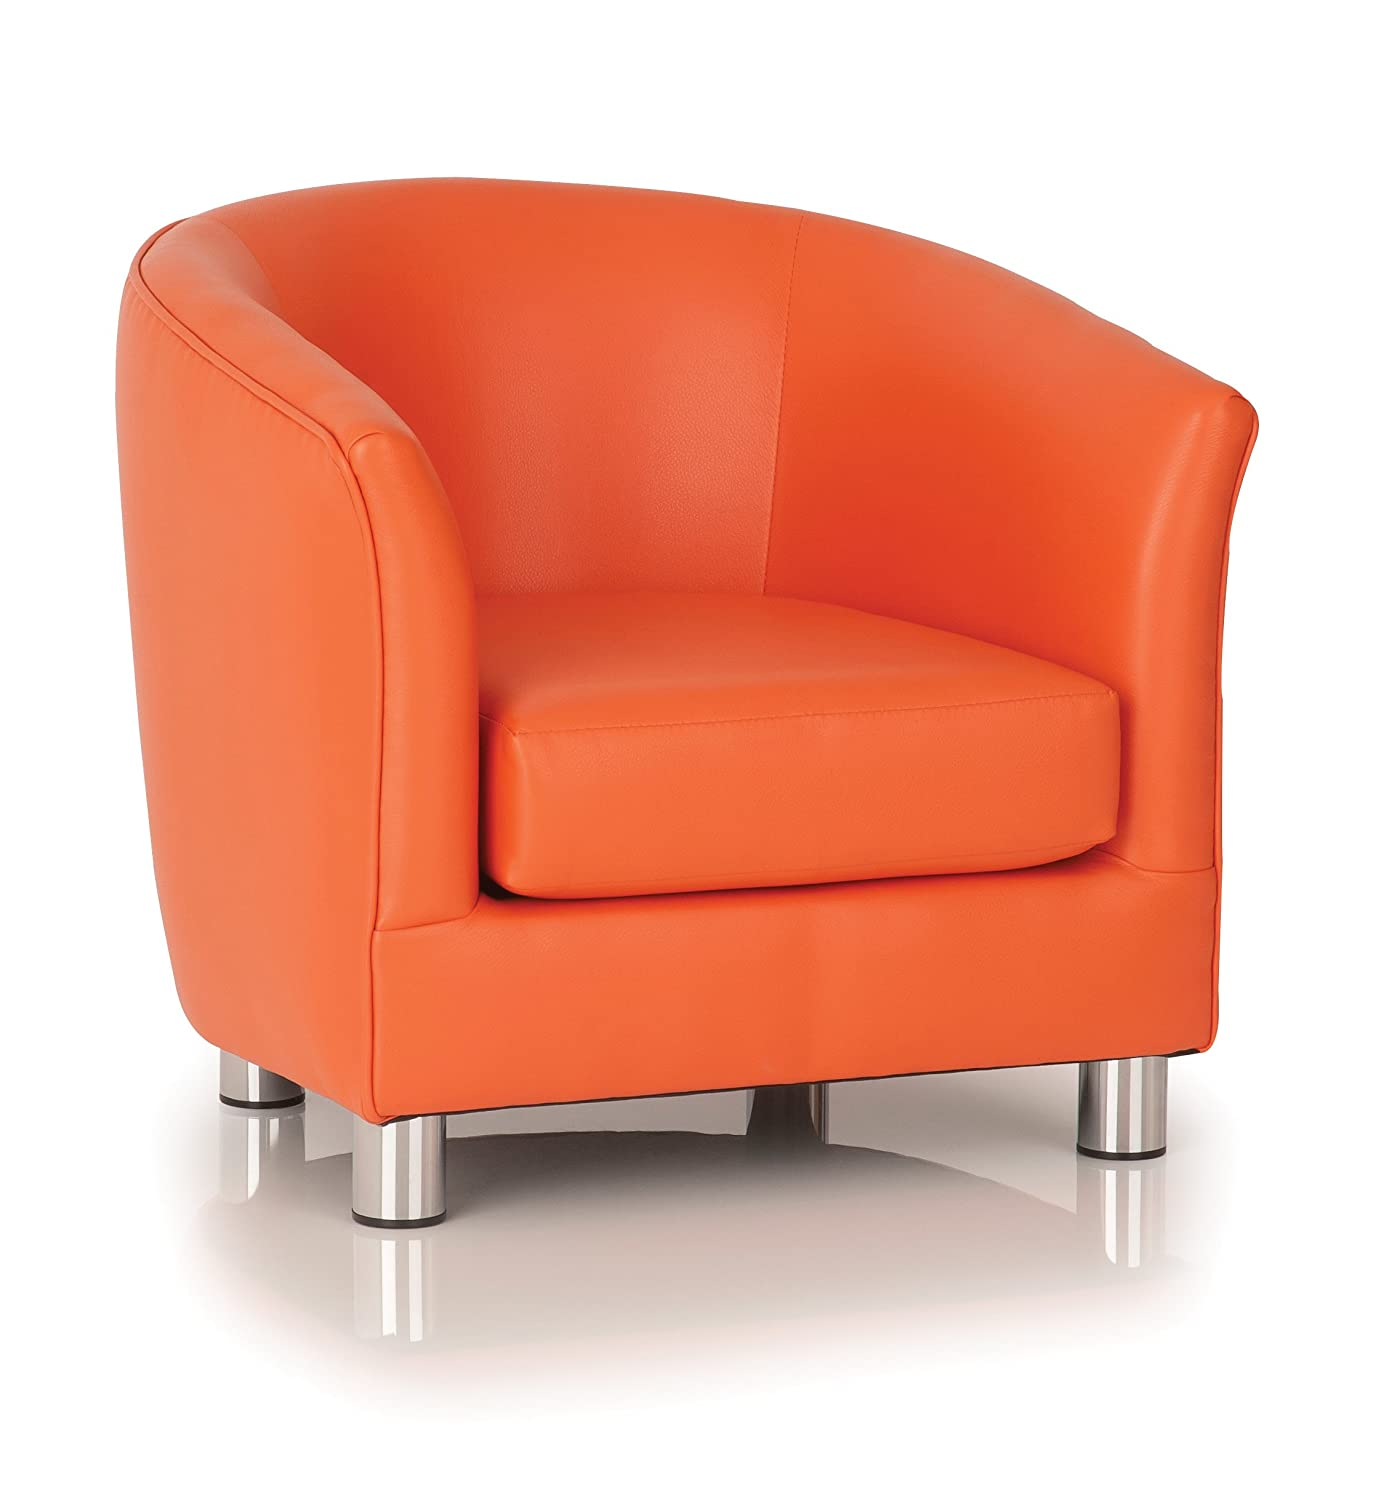 The School Furniture Co Childrens Tub Chairs - Kiddietubbies Orange ...